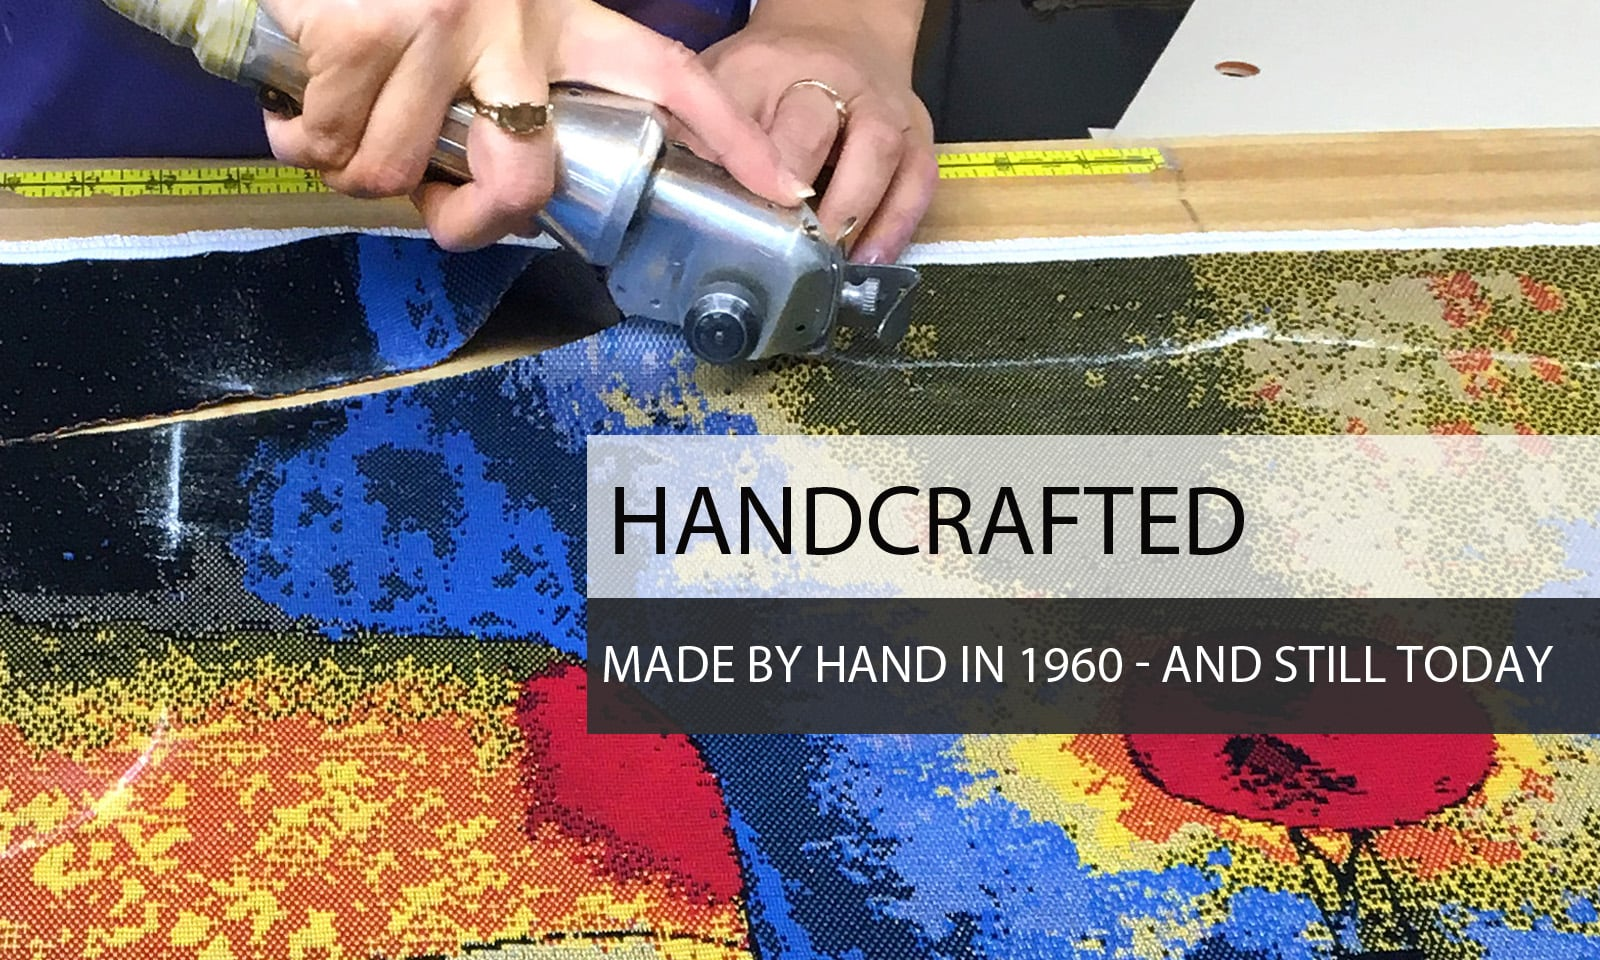 Hand Crafted - Made by Hand in 1960 - And still today